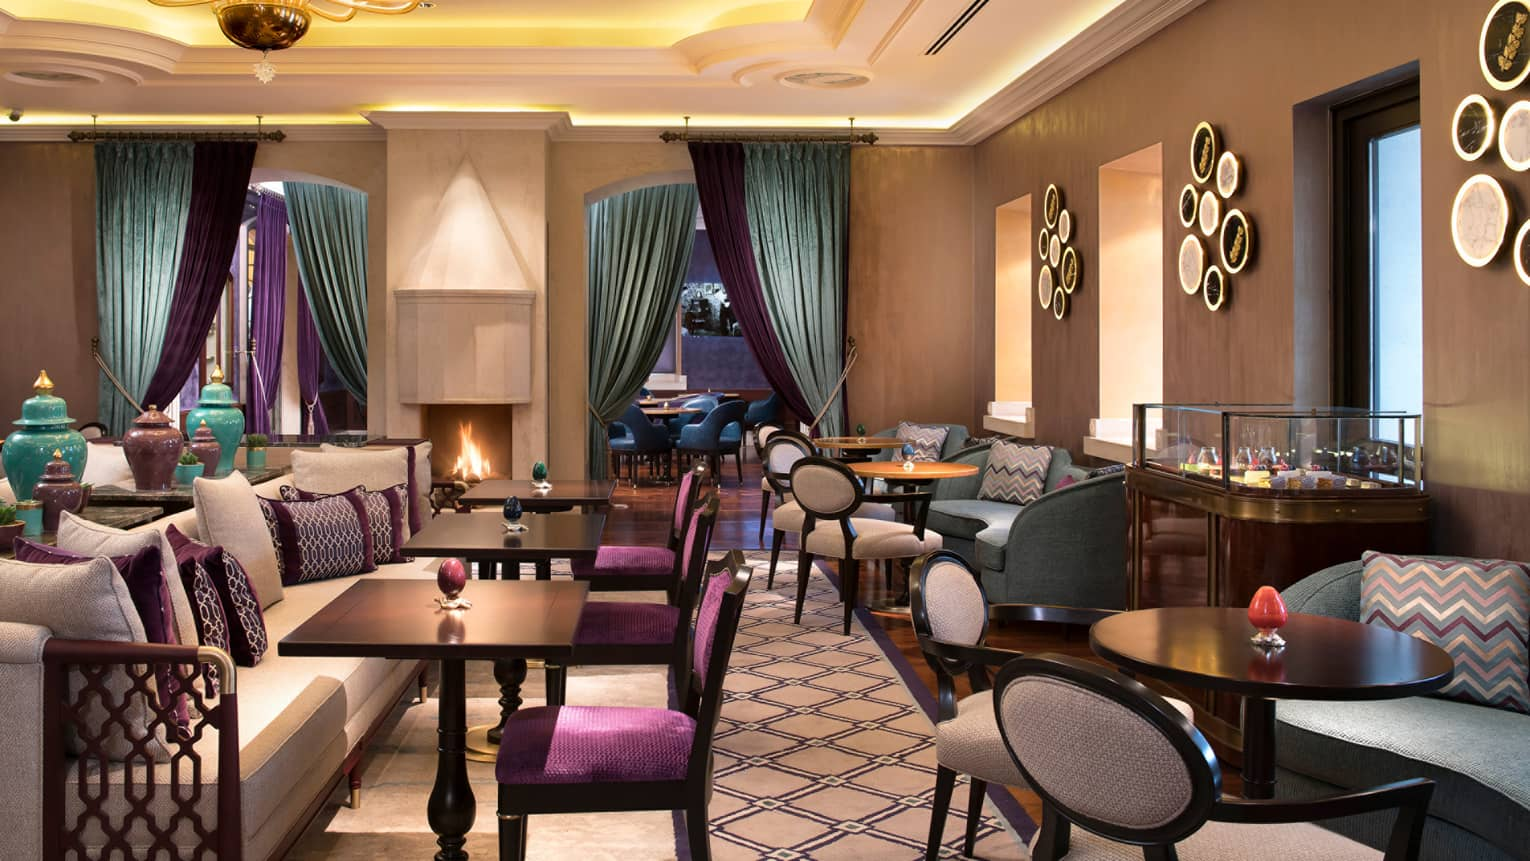 Restaurant featuring a chandelier, carpeting, dark wood tables, light purple upholstered chairs, turquoise drapes